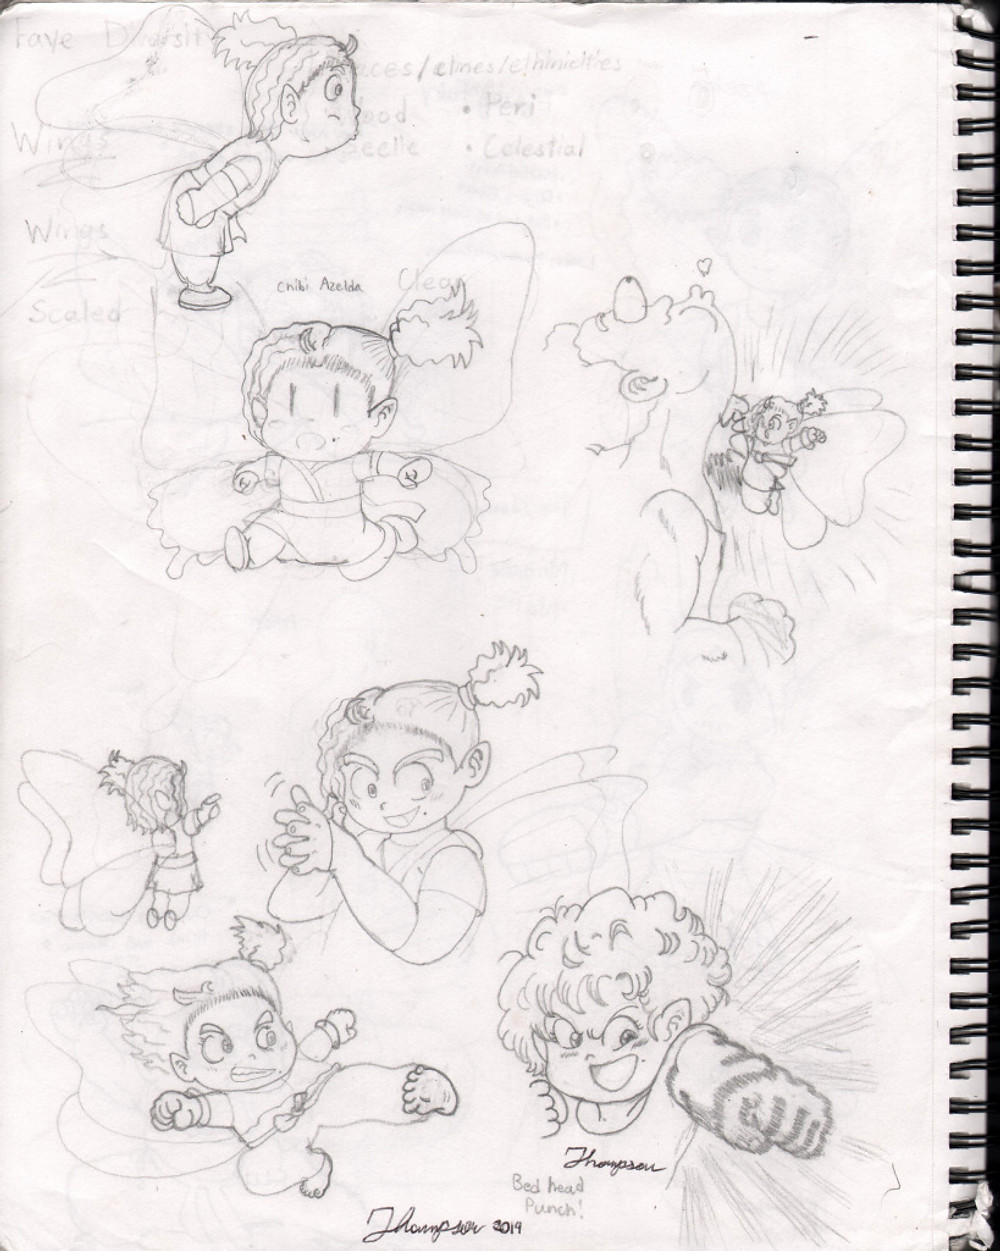 Early sketches of Azelda and her martial arts